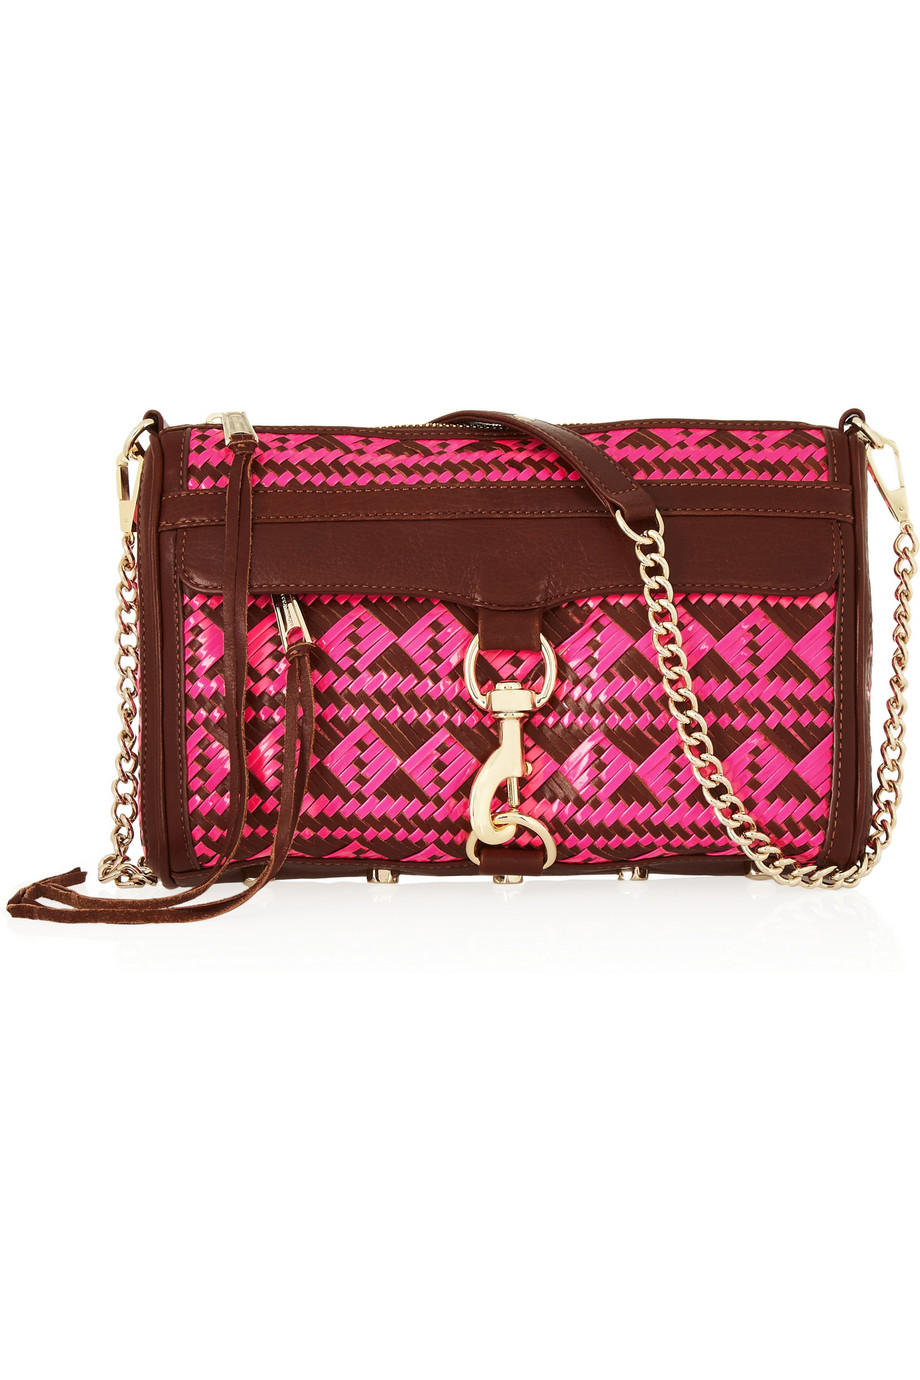 Mac woven leather shoulder bag | Rebecca Minkoff | THE OUTNET